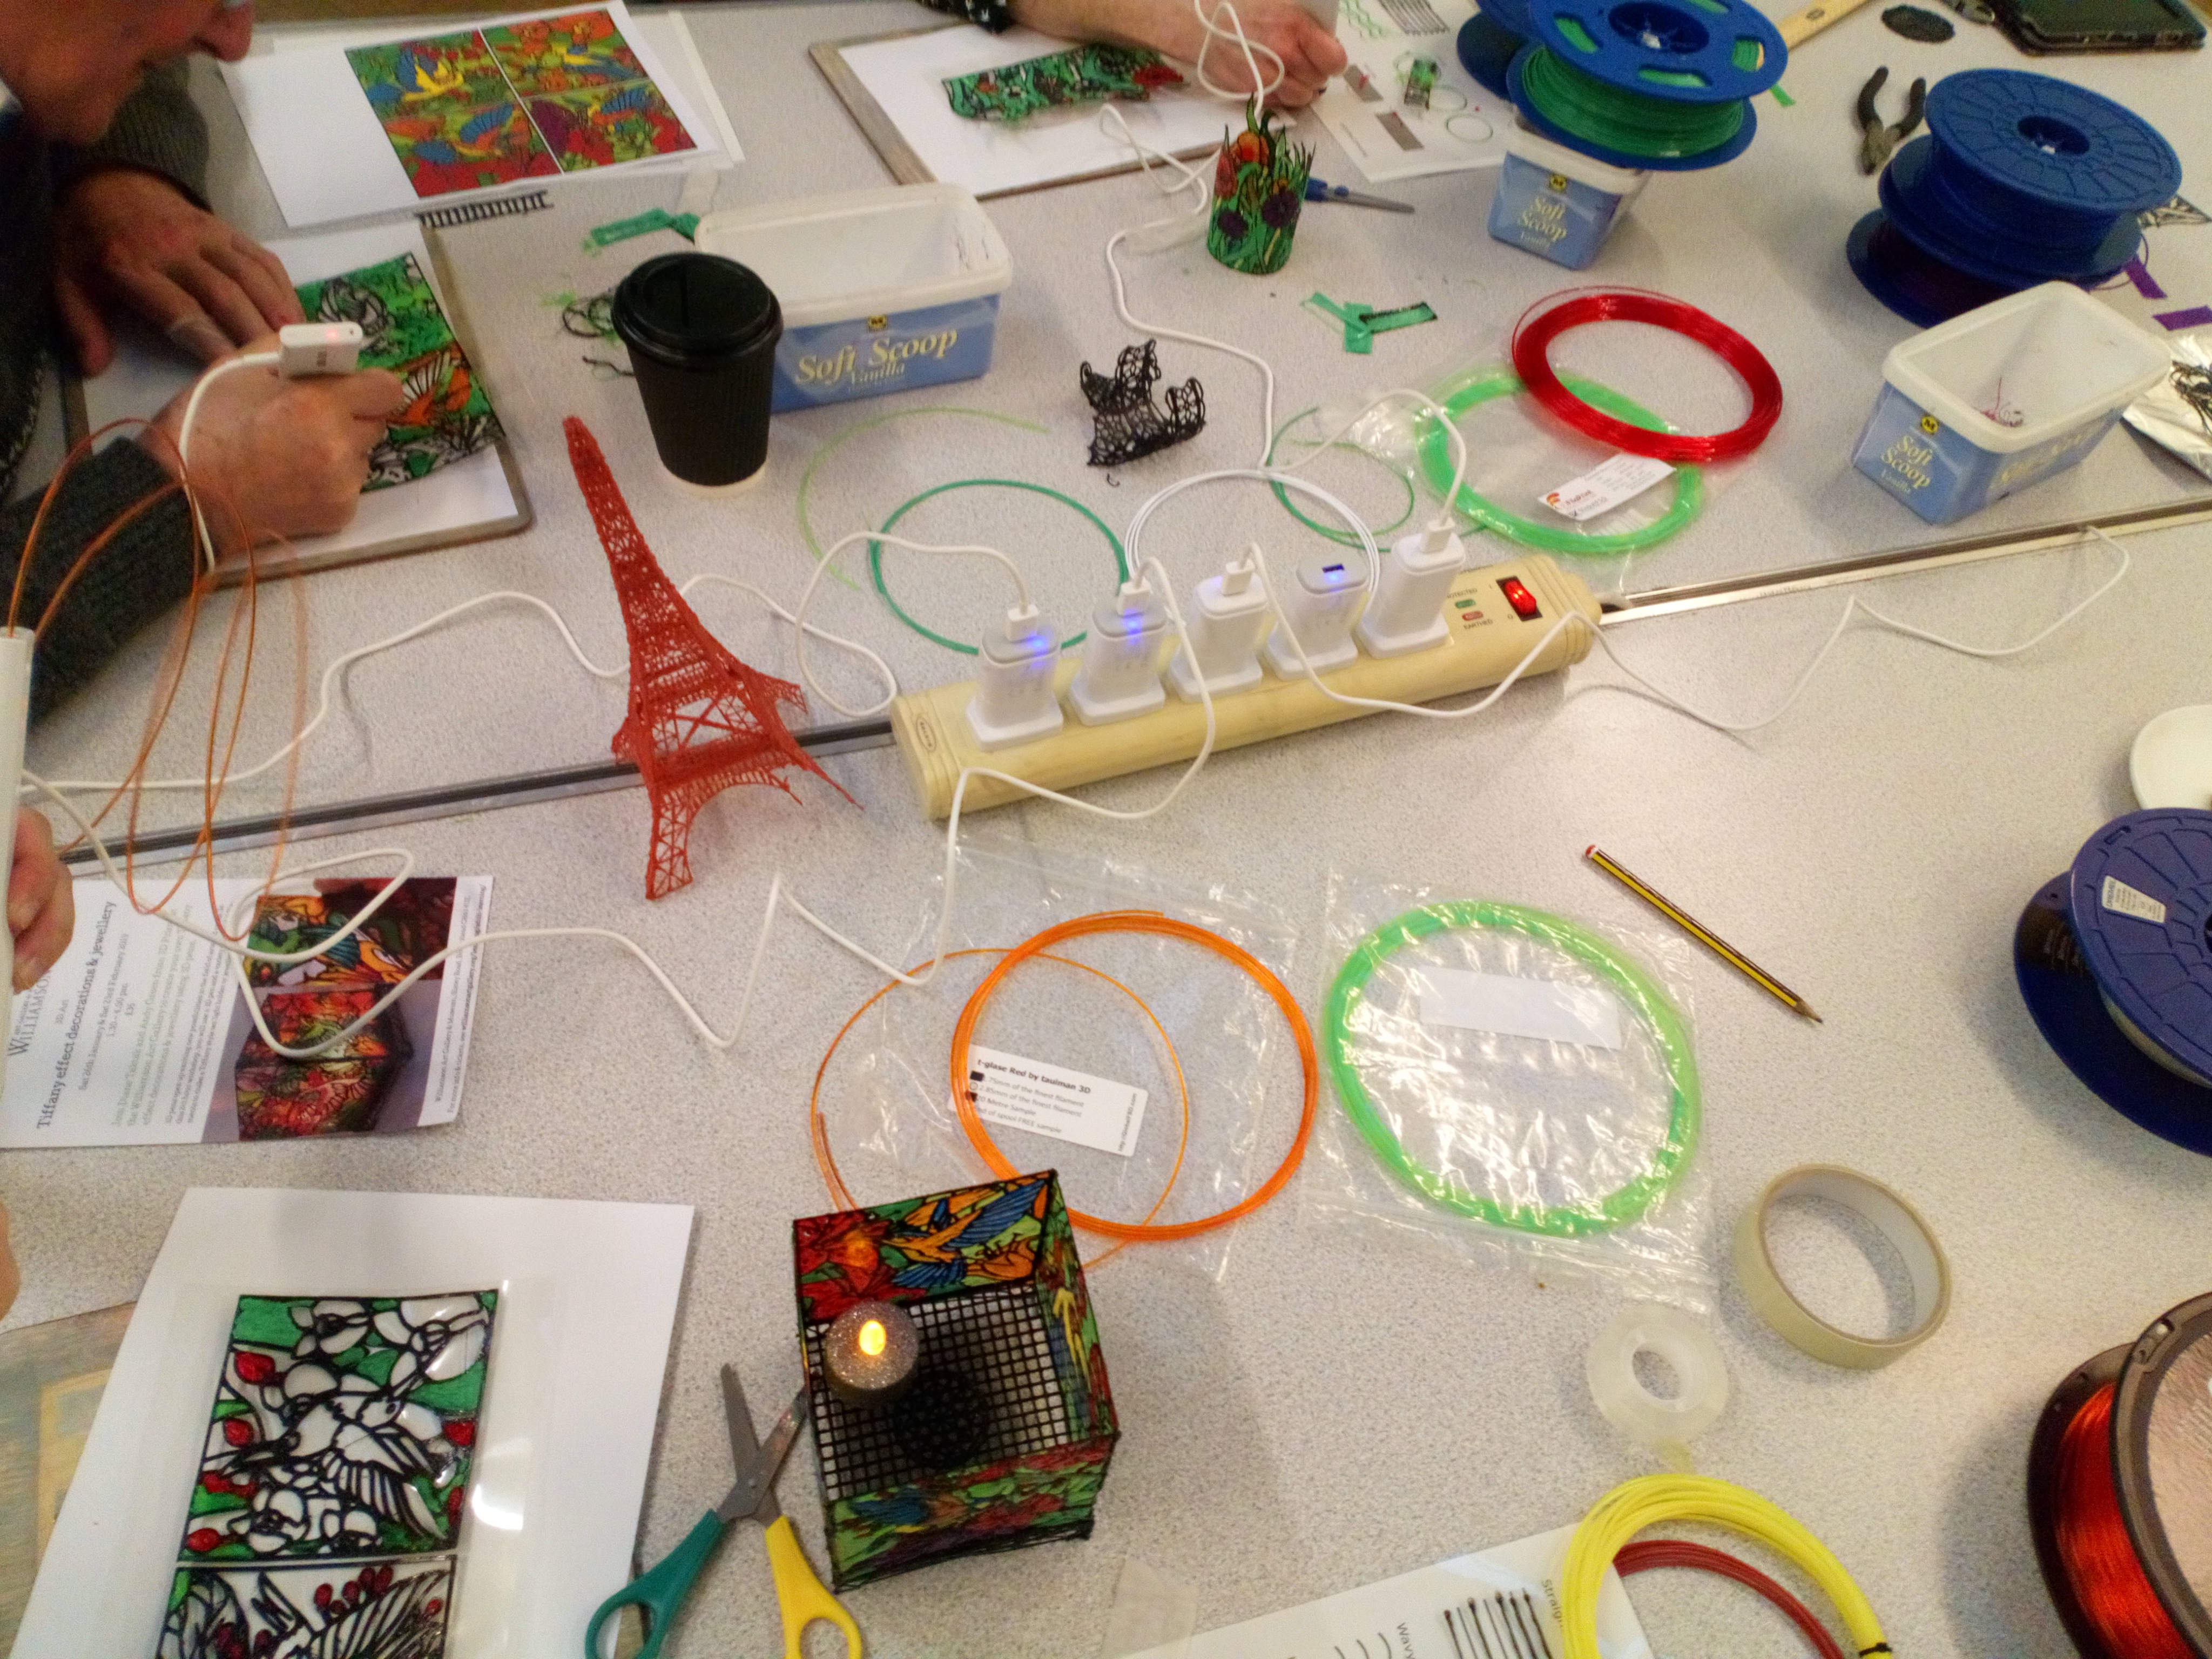 Materials for 3D pens laid out